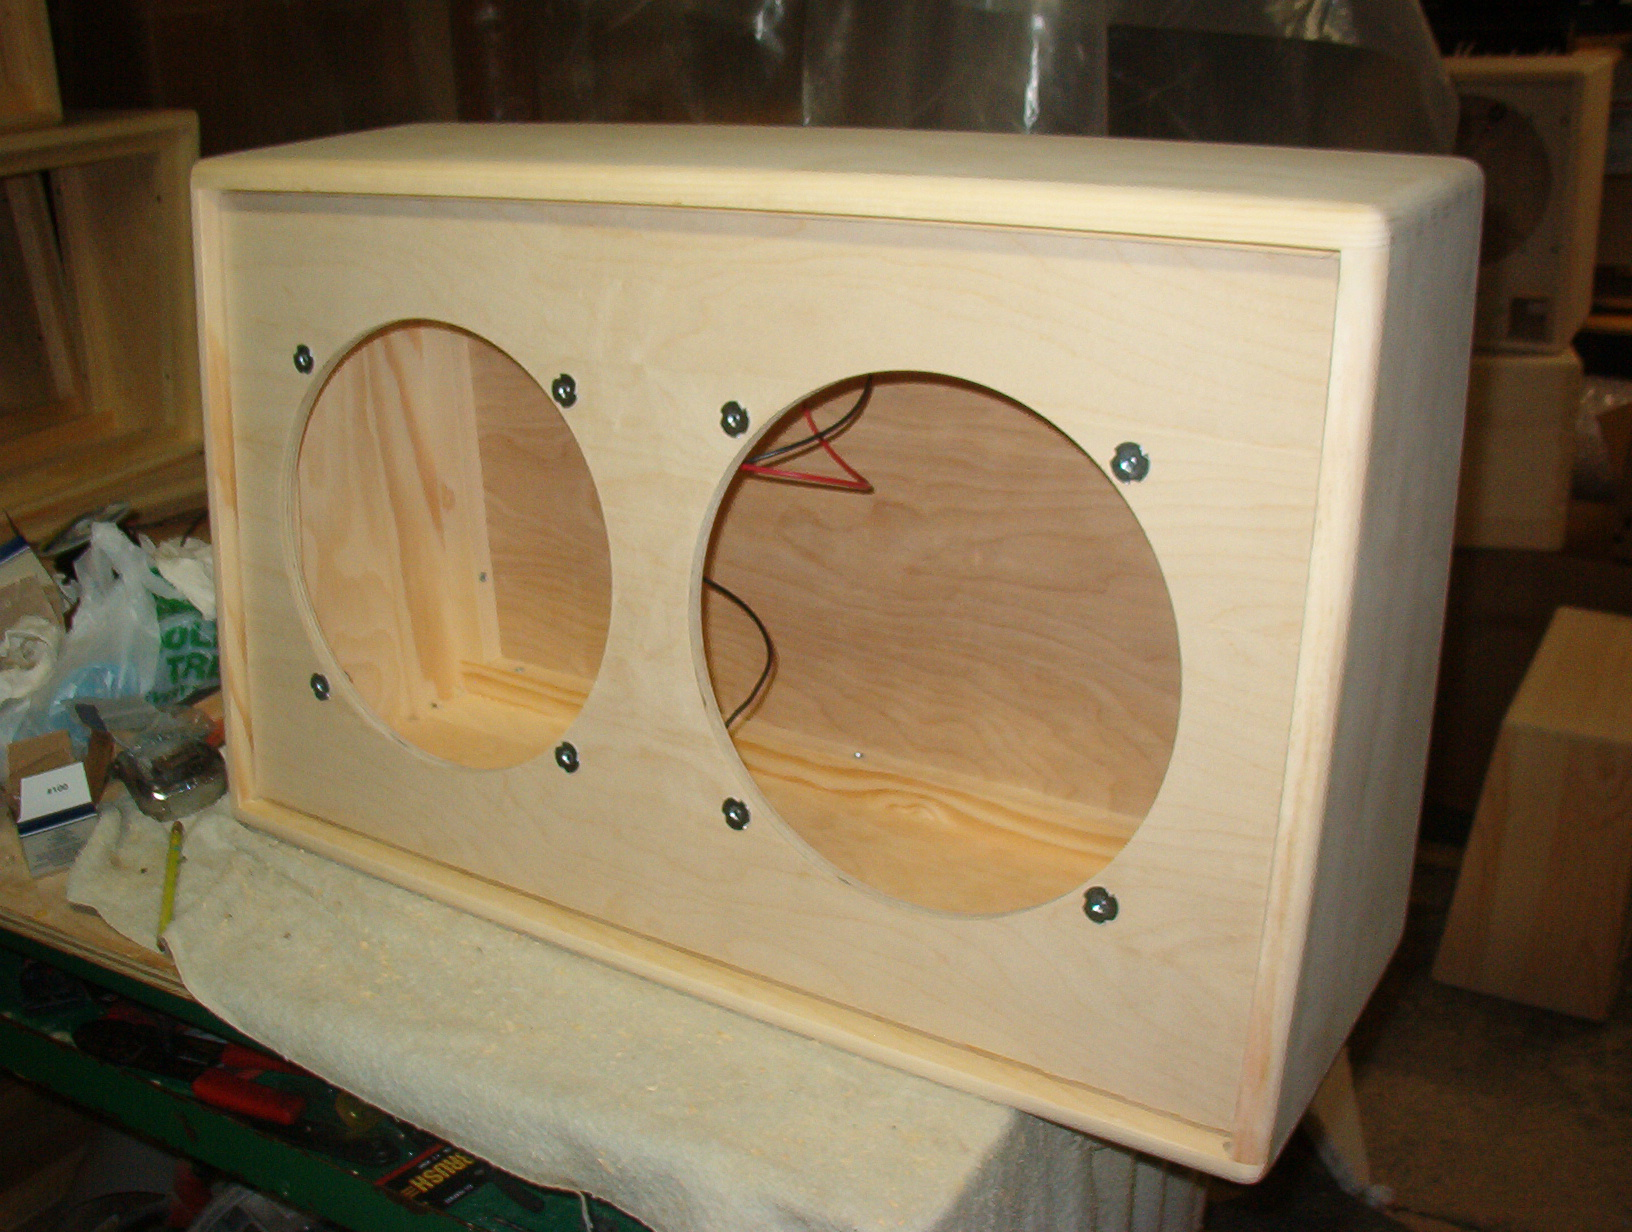 Guitar Speaker Cabinet Plans 1x12 Home Decor